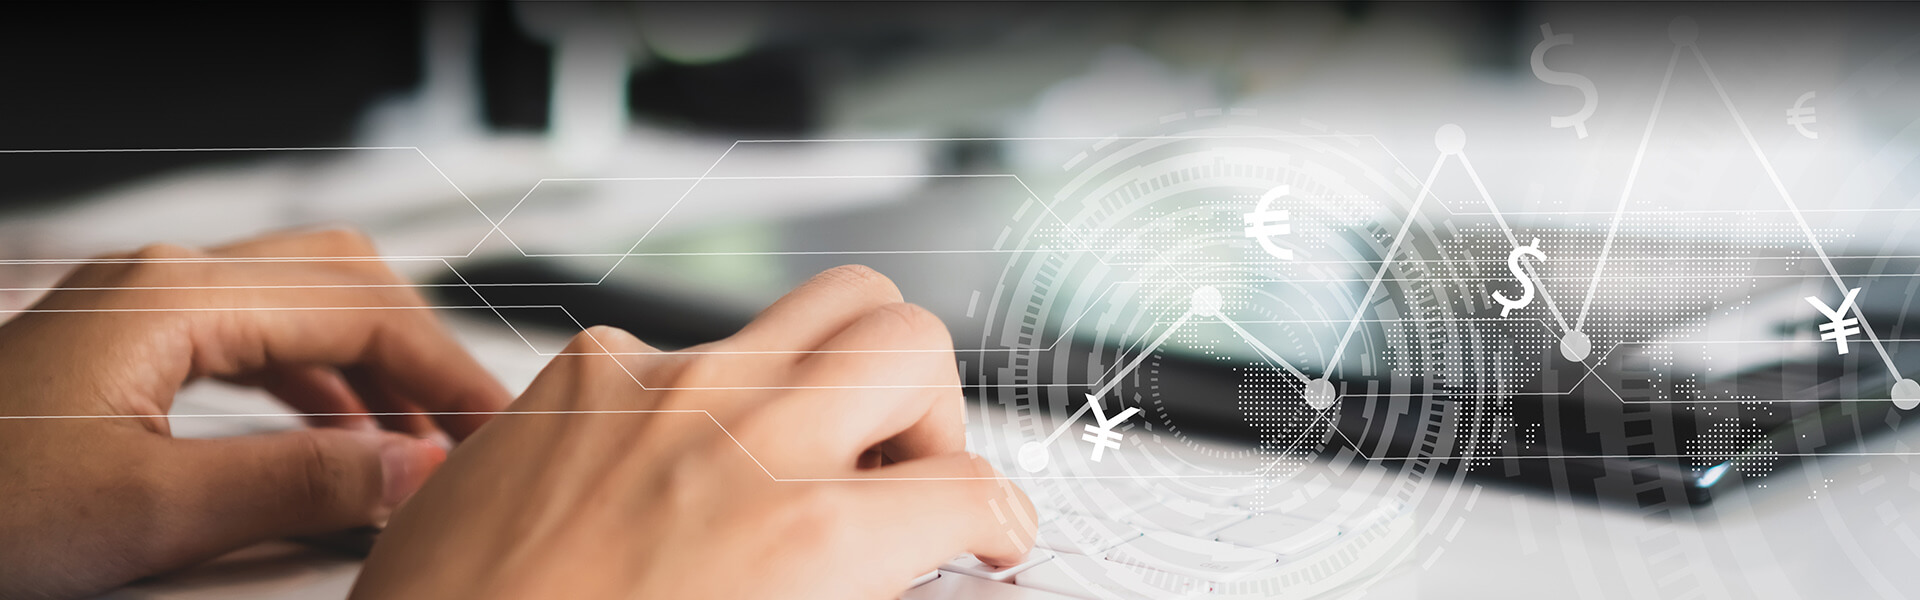 Evolving Role of Smart Automation and Digital Transformation in a Sustainable Cost Takeout